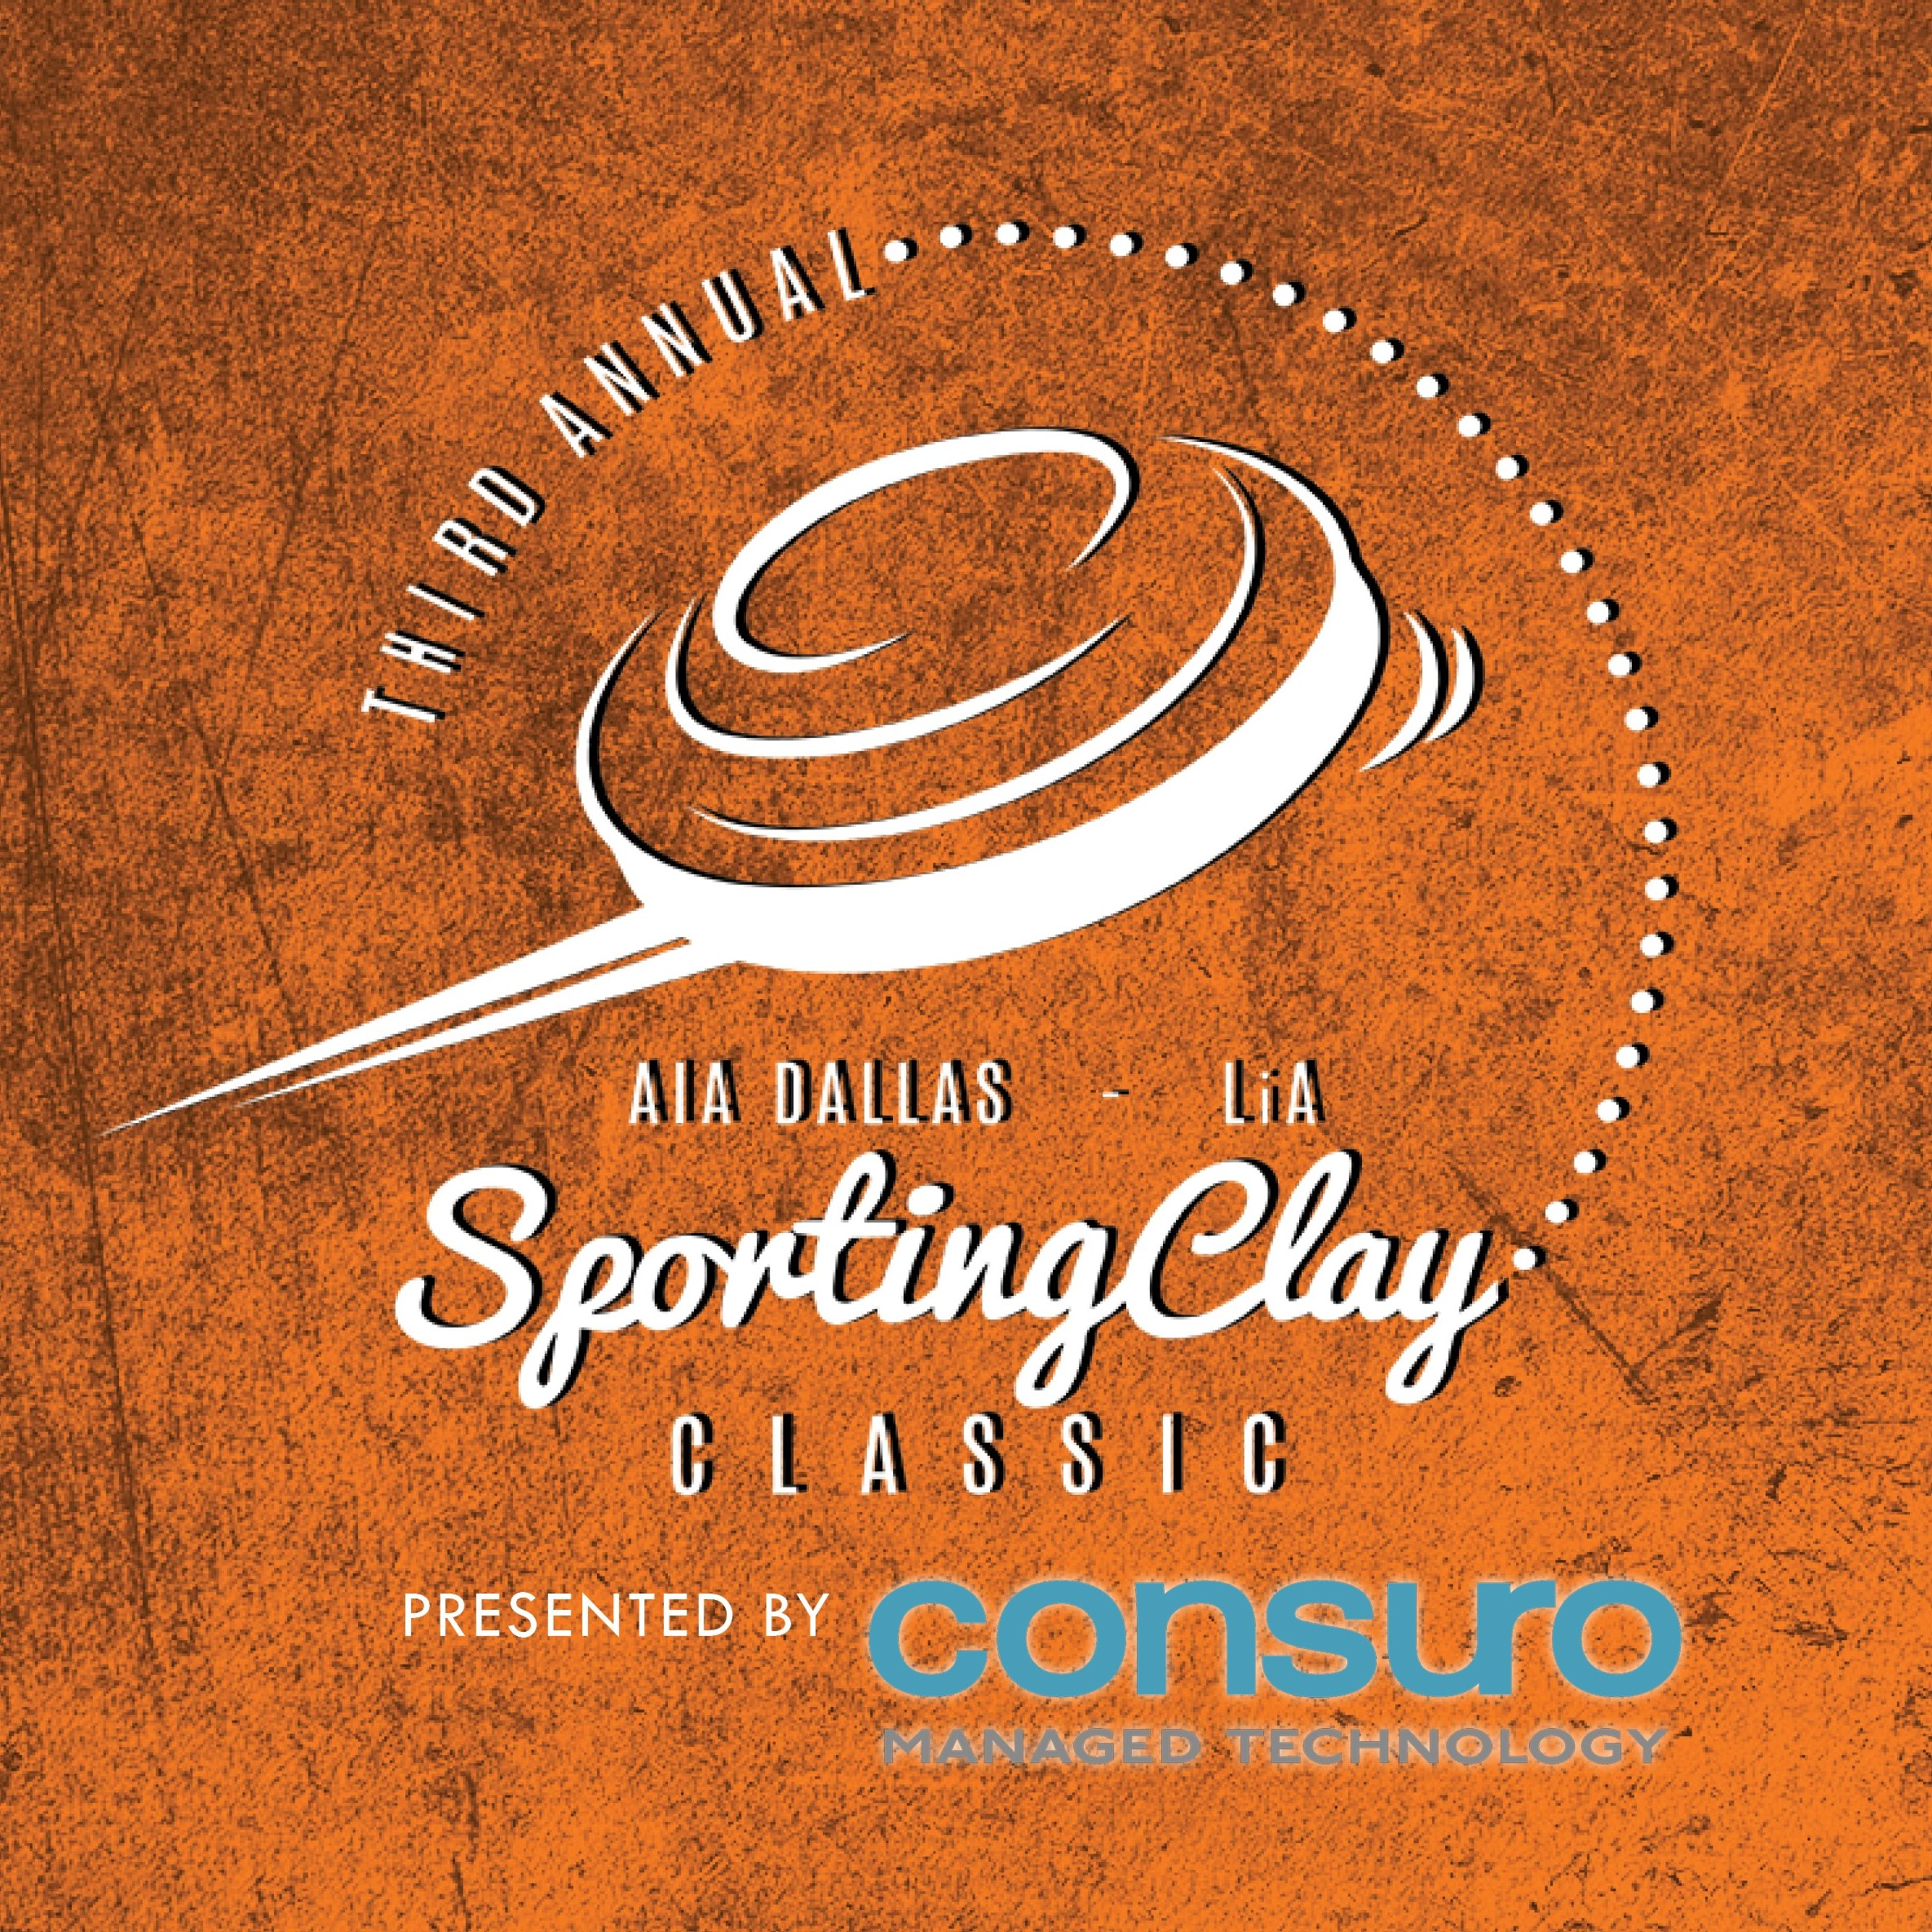 Latinos in Architecture | Sporting Clay Classic